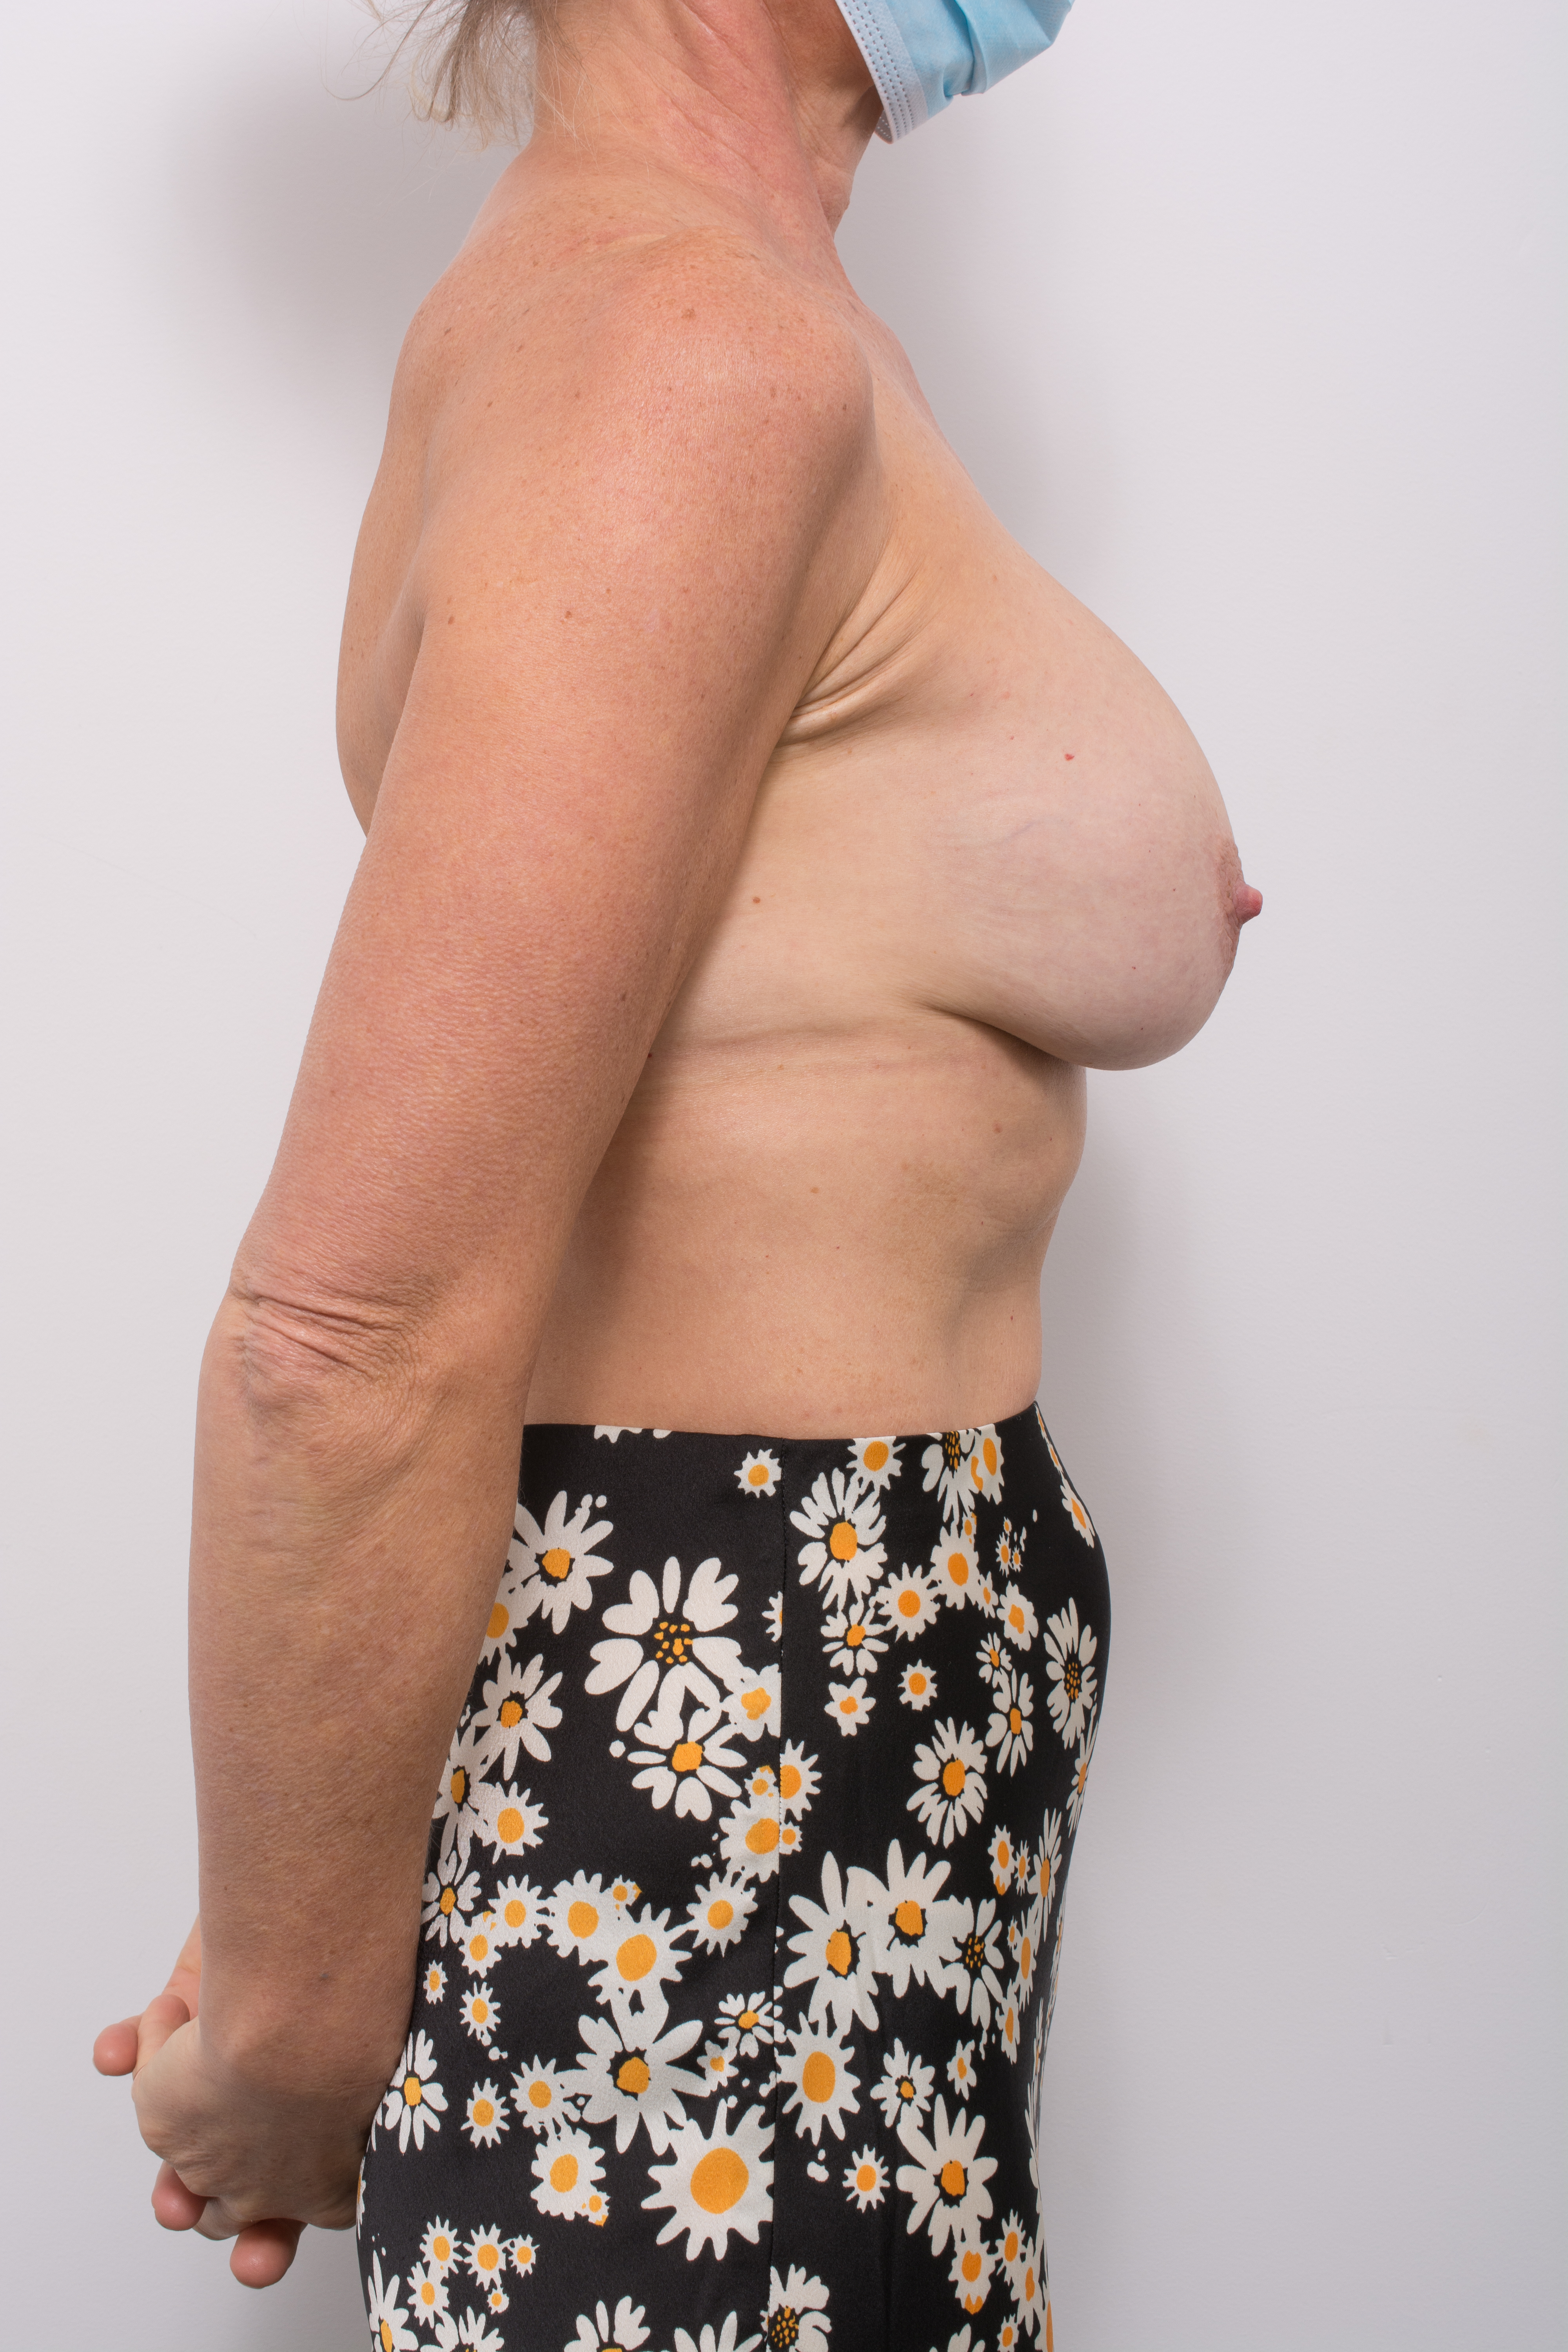 pre op removal of breast implants and mastopexy (1 of 5) (1)